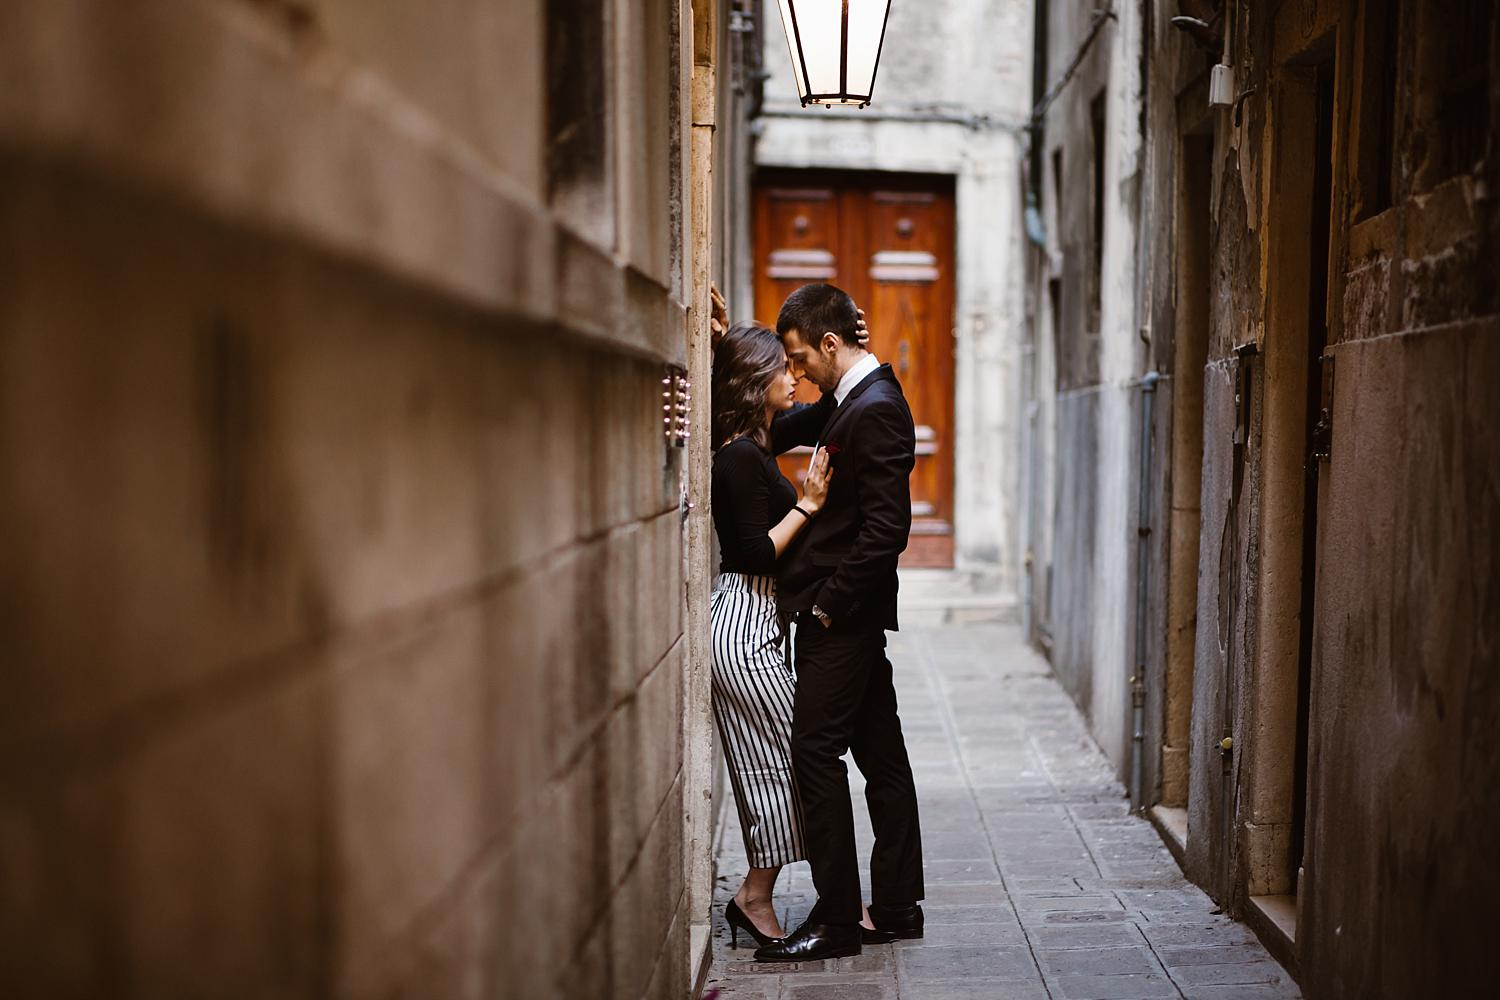 GL 31 - Giulia & Leonardo - An Intimate Shooting in Venice